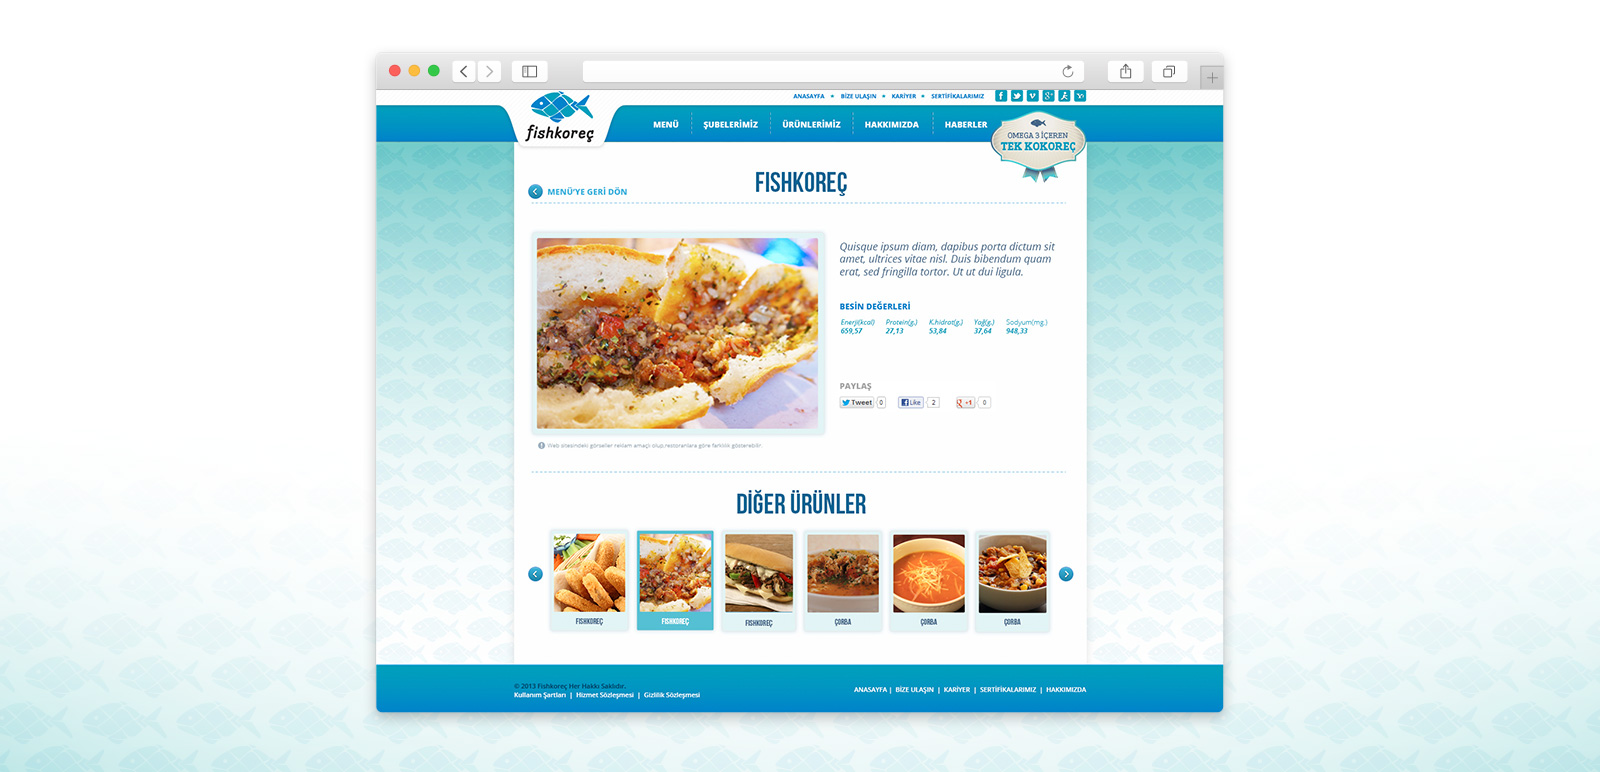 Fishkoreç Website 3